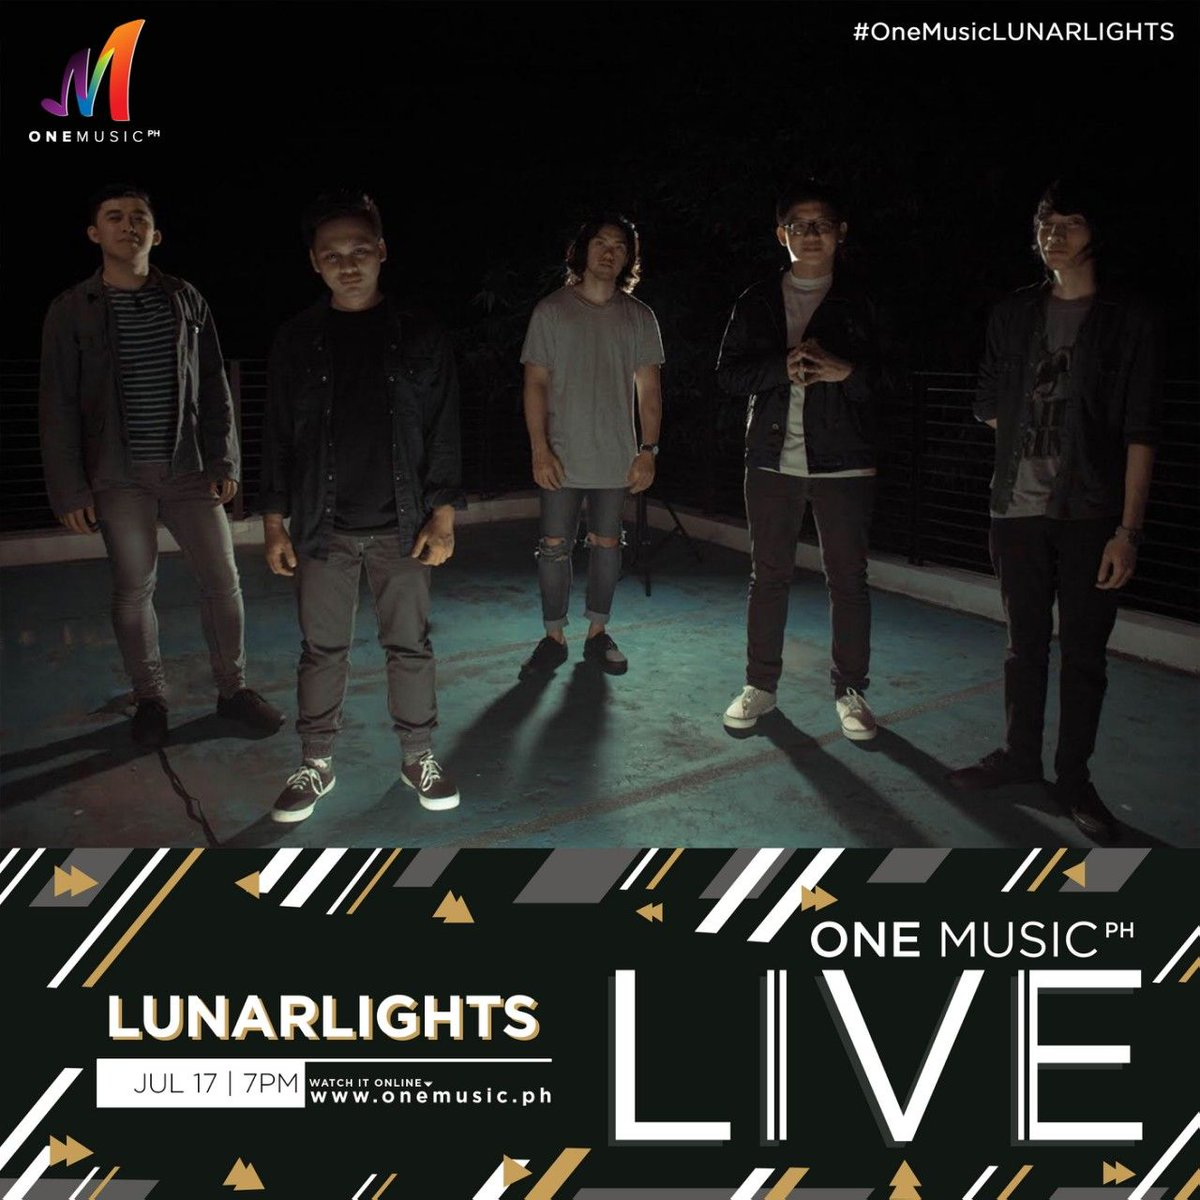 Were coming back for another #OneMusicLIVE session next Tuesday! Catch @LunarLightsph on July 17, starting 7 PM only on the One Music PH Facebook and YouTube channel!